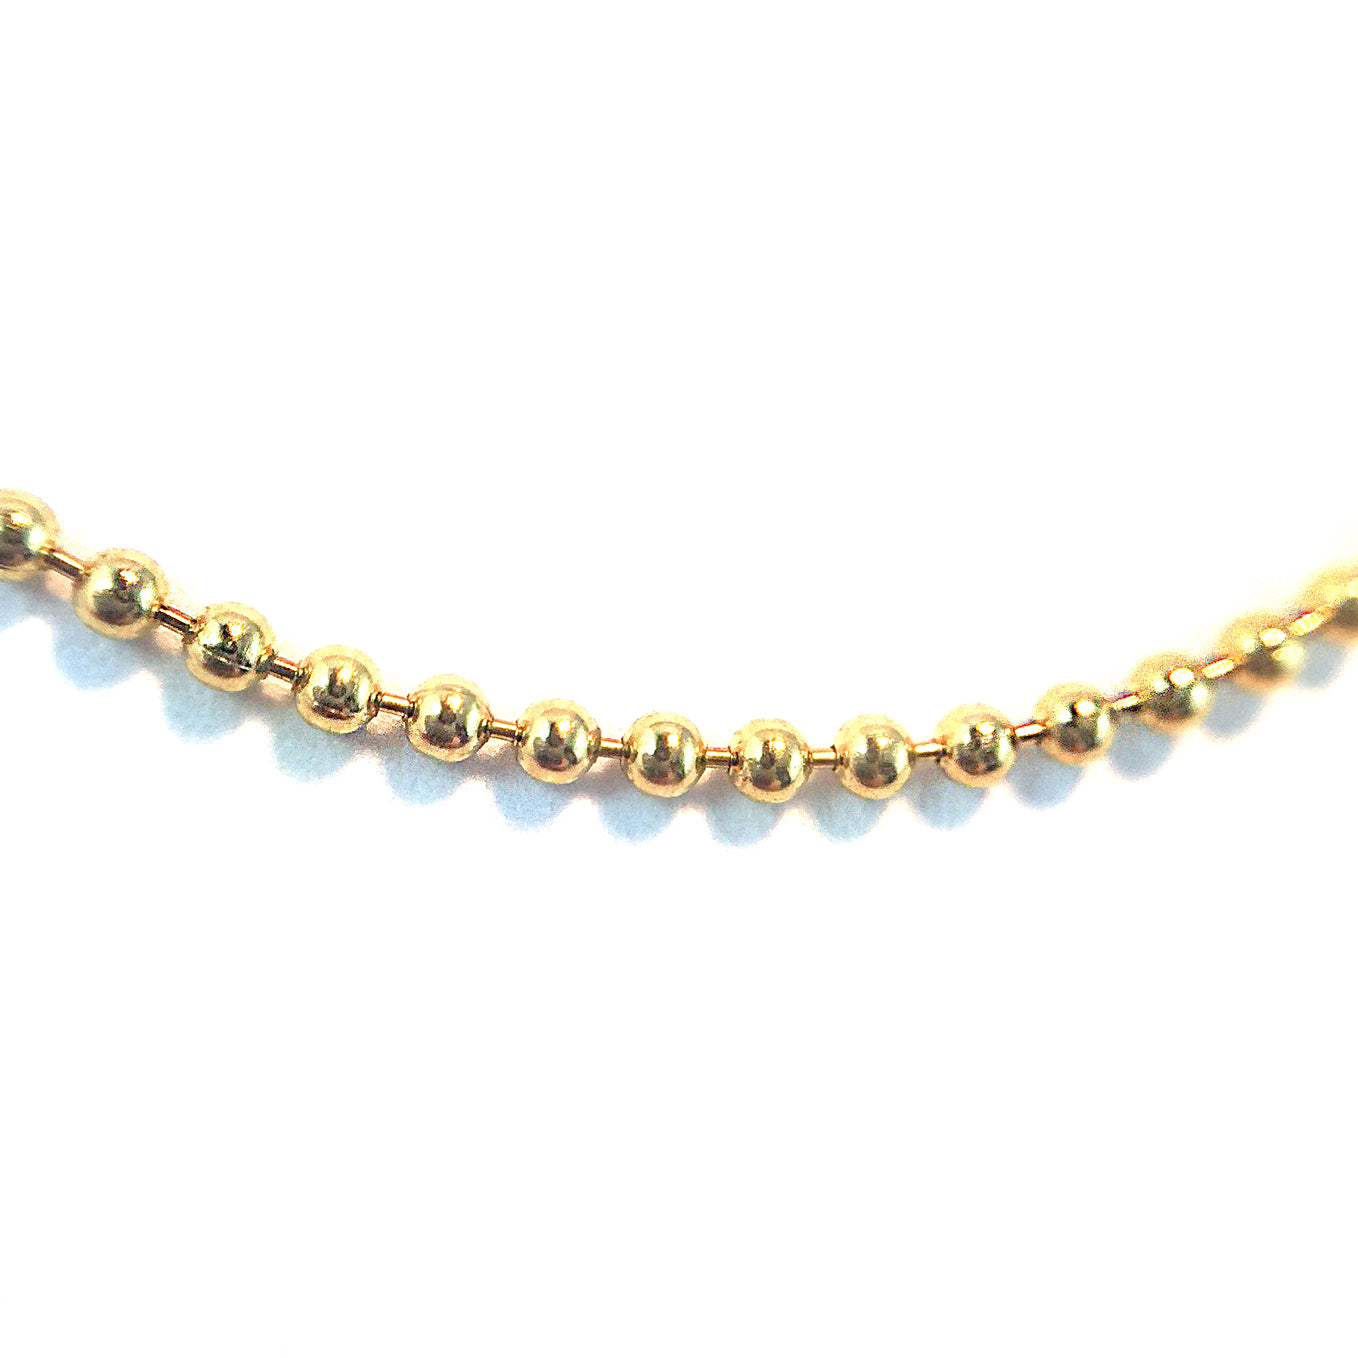 BALL CHAIN - SOLID GOLD